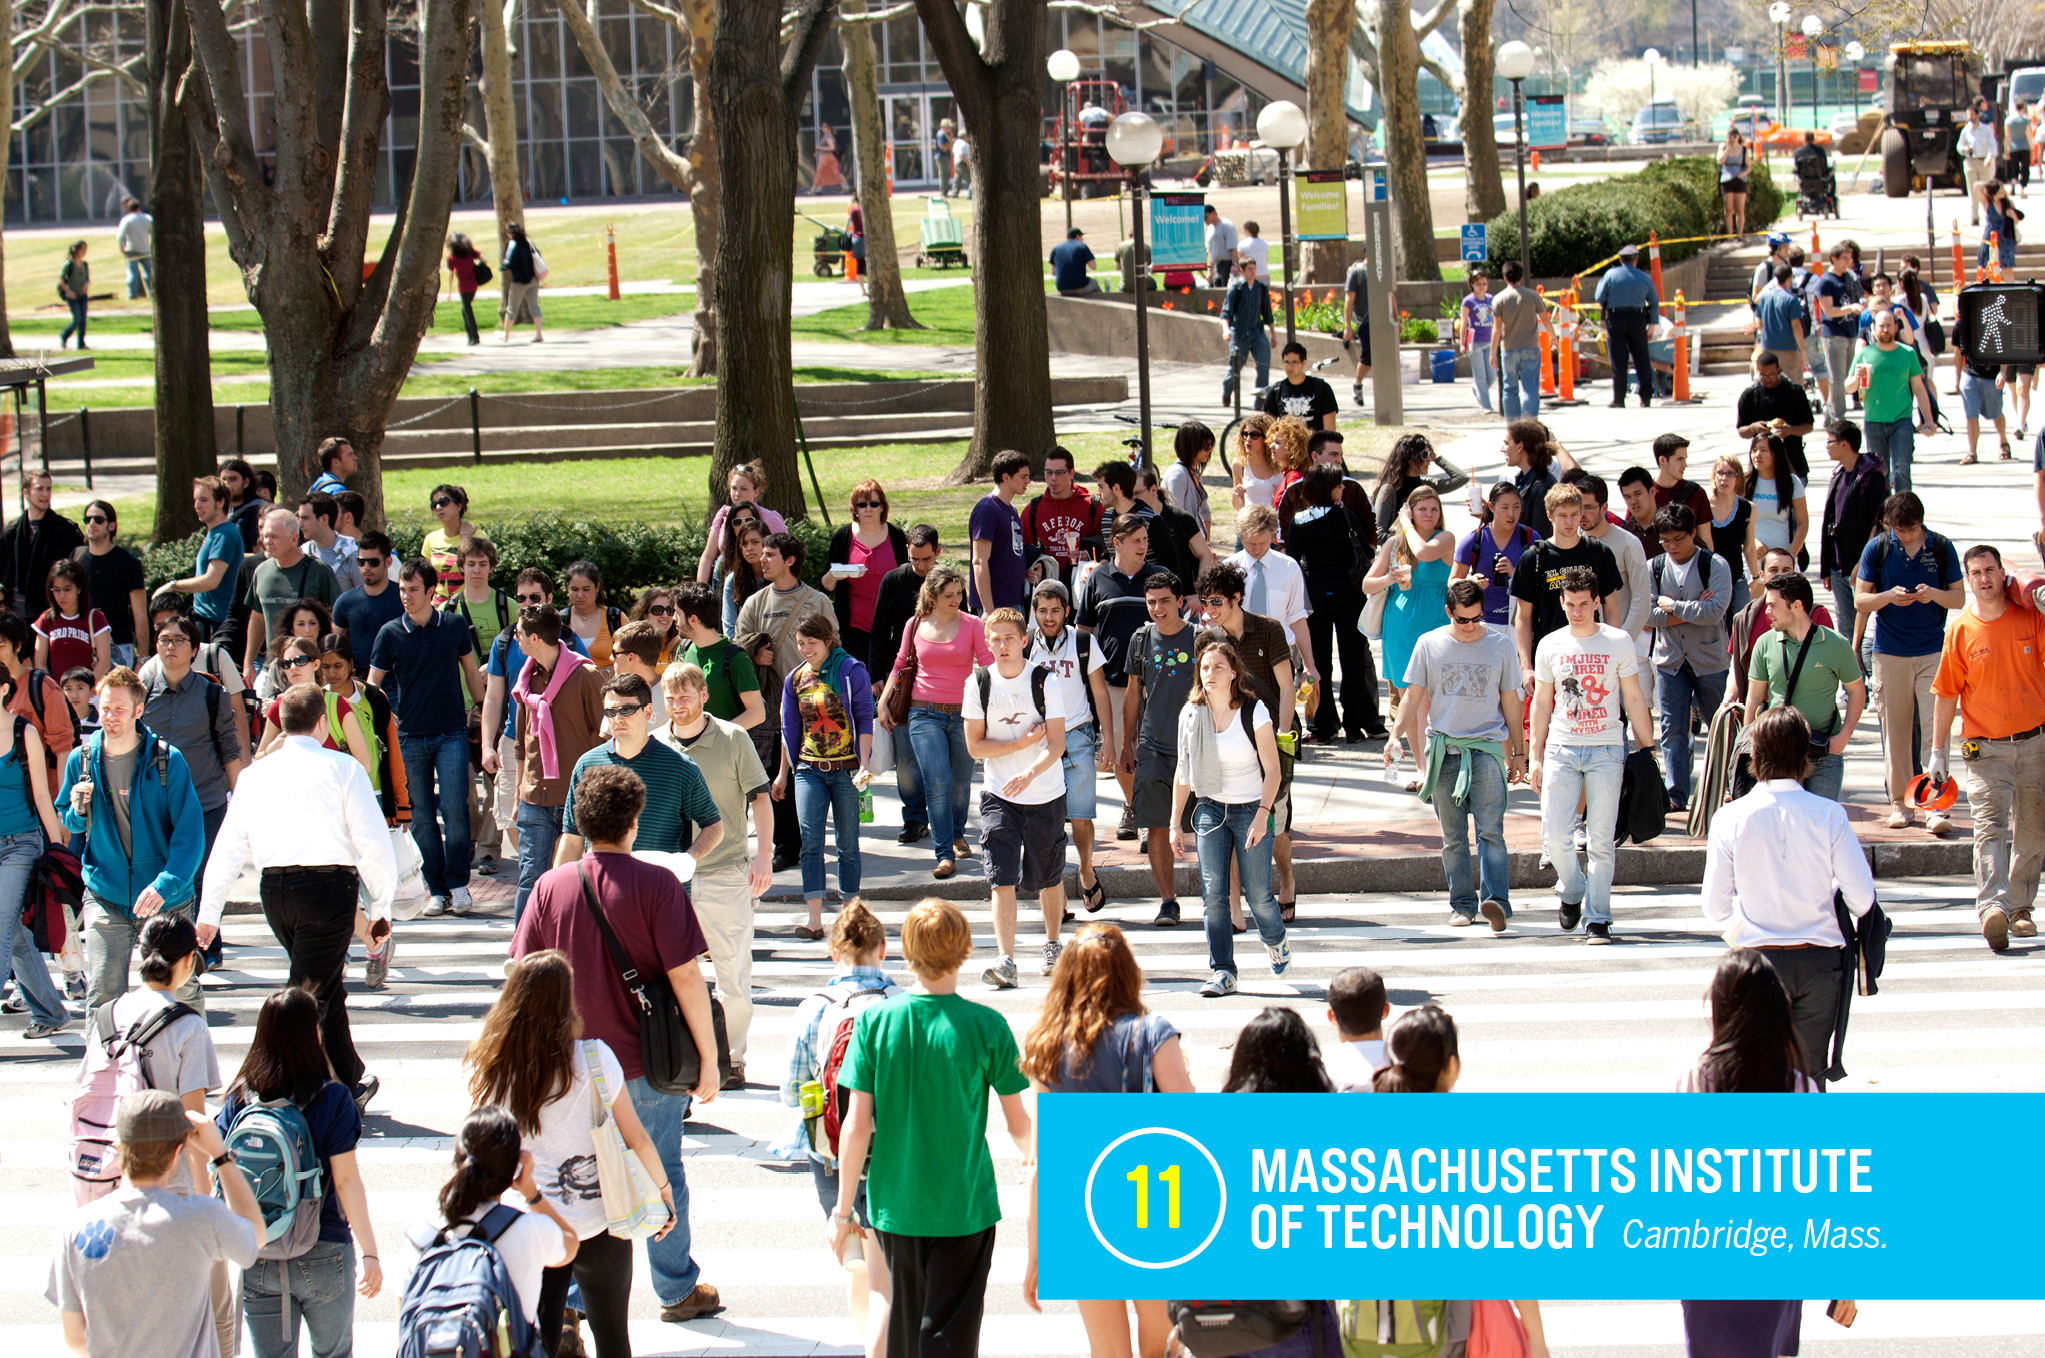 """<a href=""""https://money.com/best-colleges/profile/massachusetts-institute-of-technology/"""" target=""""_blank"""">MIT</a> is one of the best known and most respected science colleges in the world. It's competitive selection process and grueling course load produces results, though—recent graduates boast one of the highest average salaries in Money's rankings, according to PayScale data. <a href=""""https://money.com/best-colleges/profile/massachusetts-institute-of-technology/"""" target=""""_blank"""">FULL PROFILE</a>"""